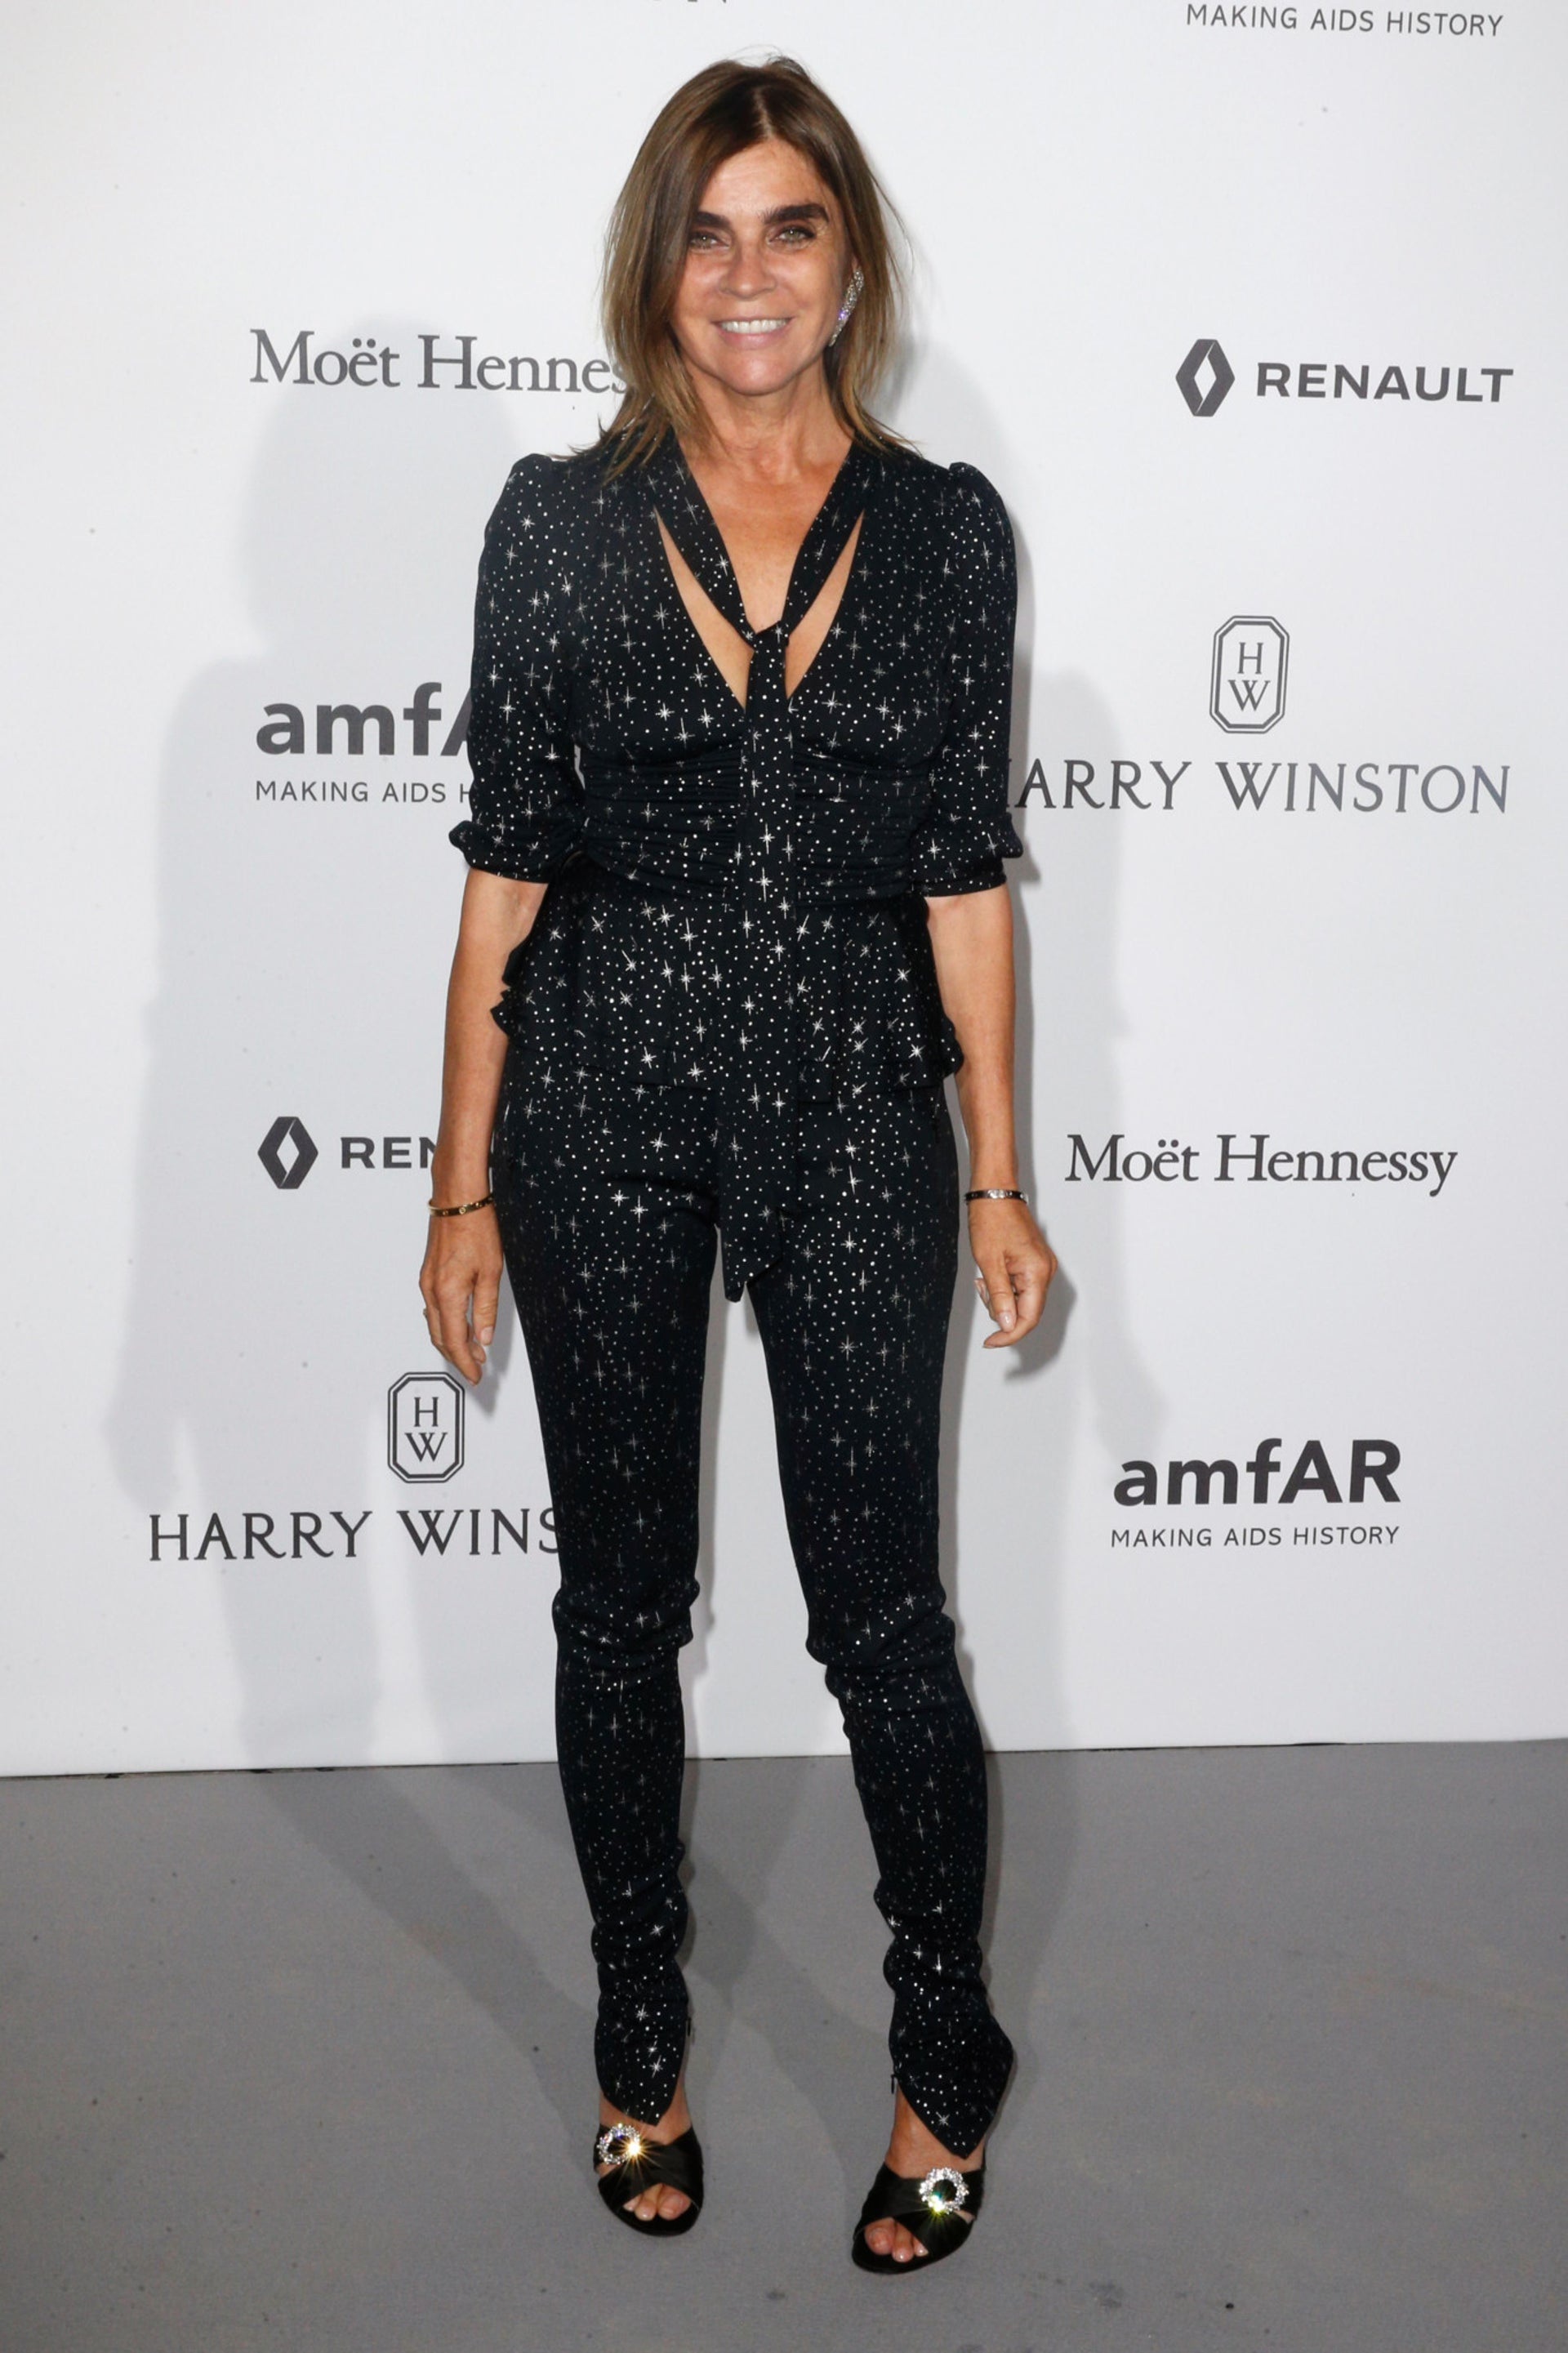 French journalist Carine Roitfeld poses during a photocall as part of a dinner organized by the foundation for Aids research amfAR, on July 2, 2017 at the Grand Palais in Paris.  /